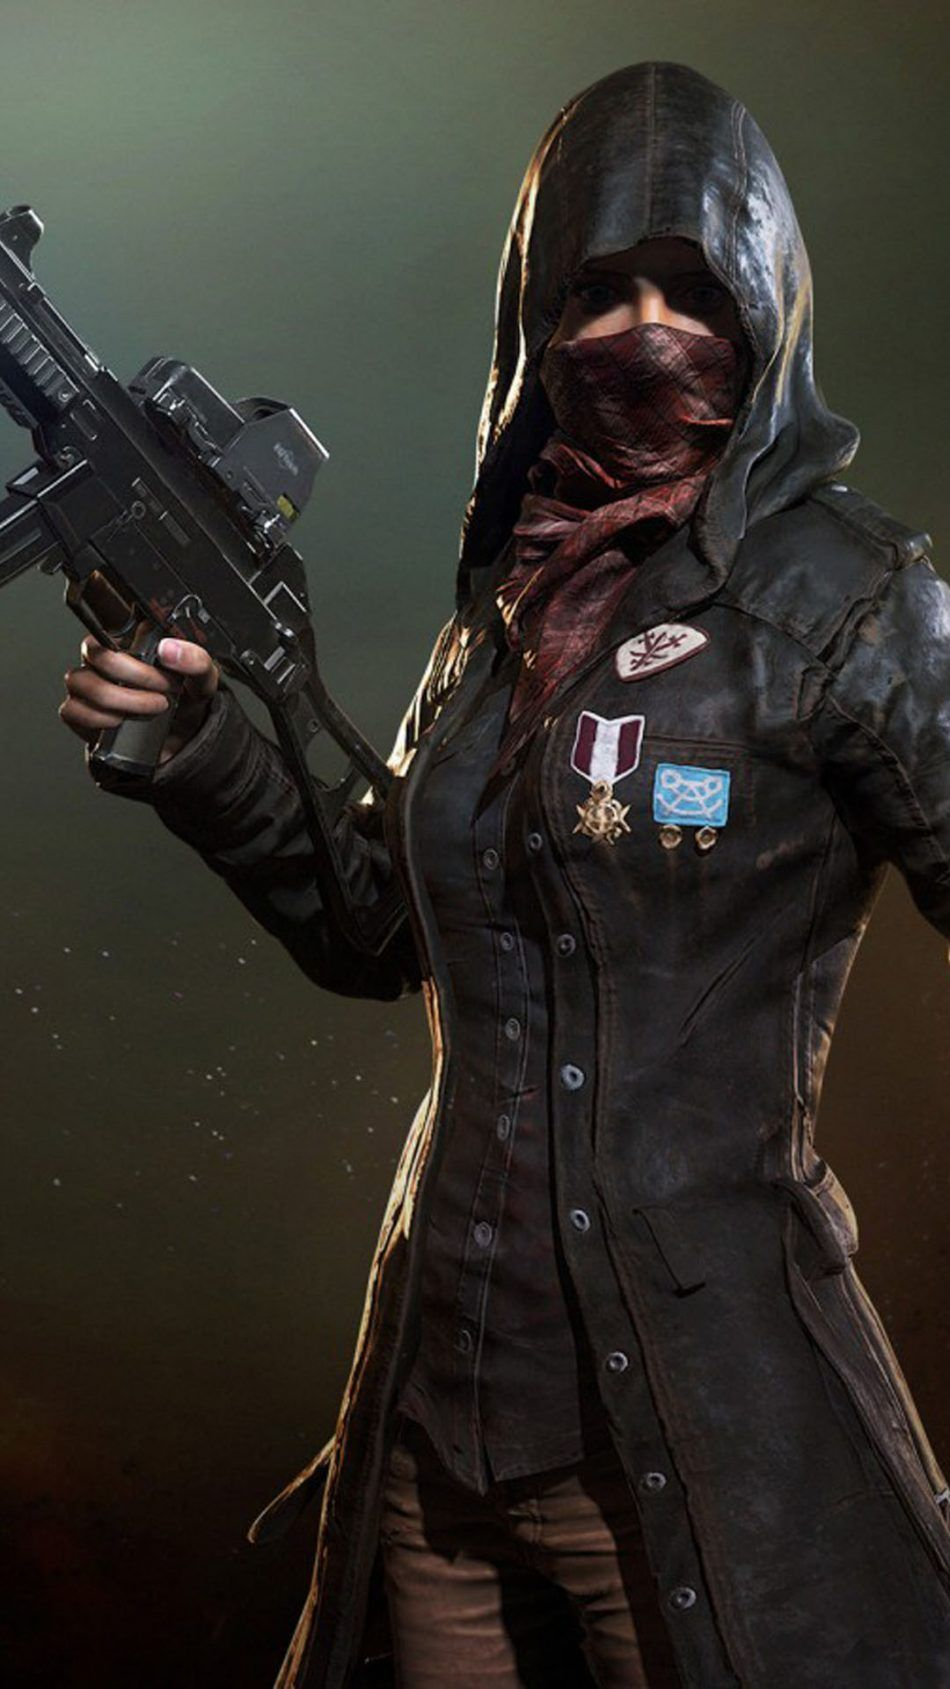 Pubg Female Player In Mask Pubg Mobile Wallpaper Wallpaper